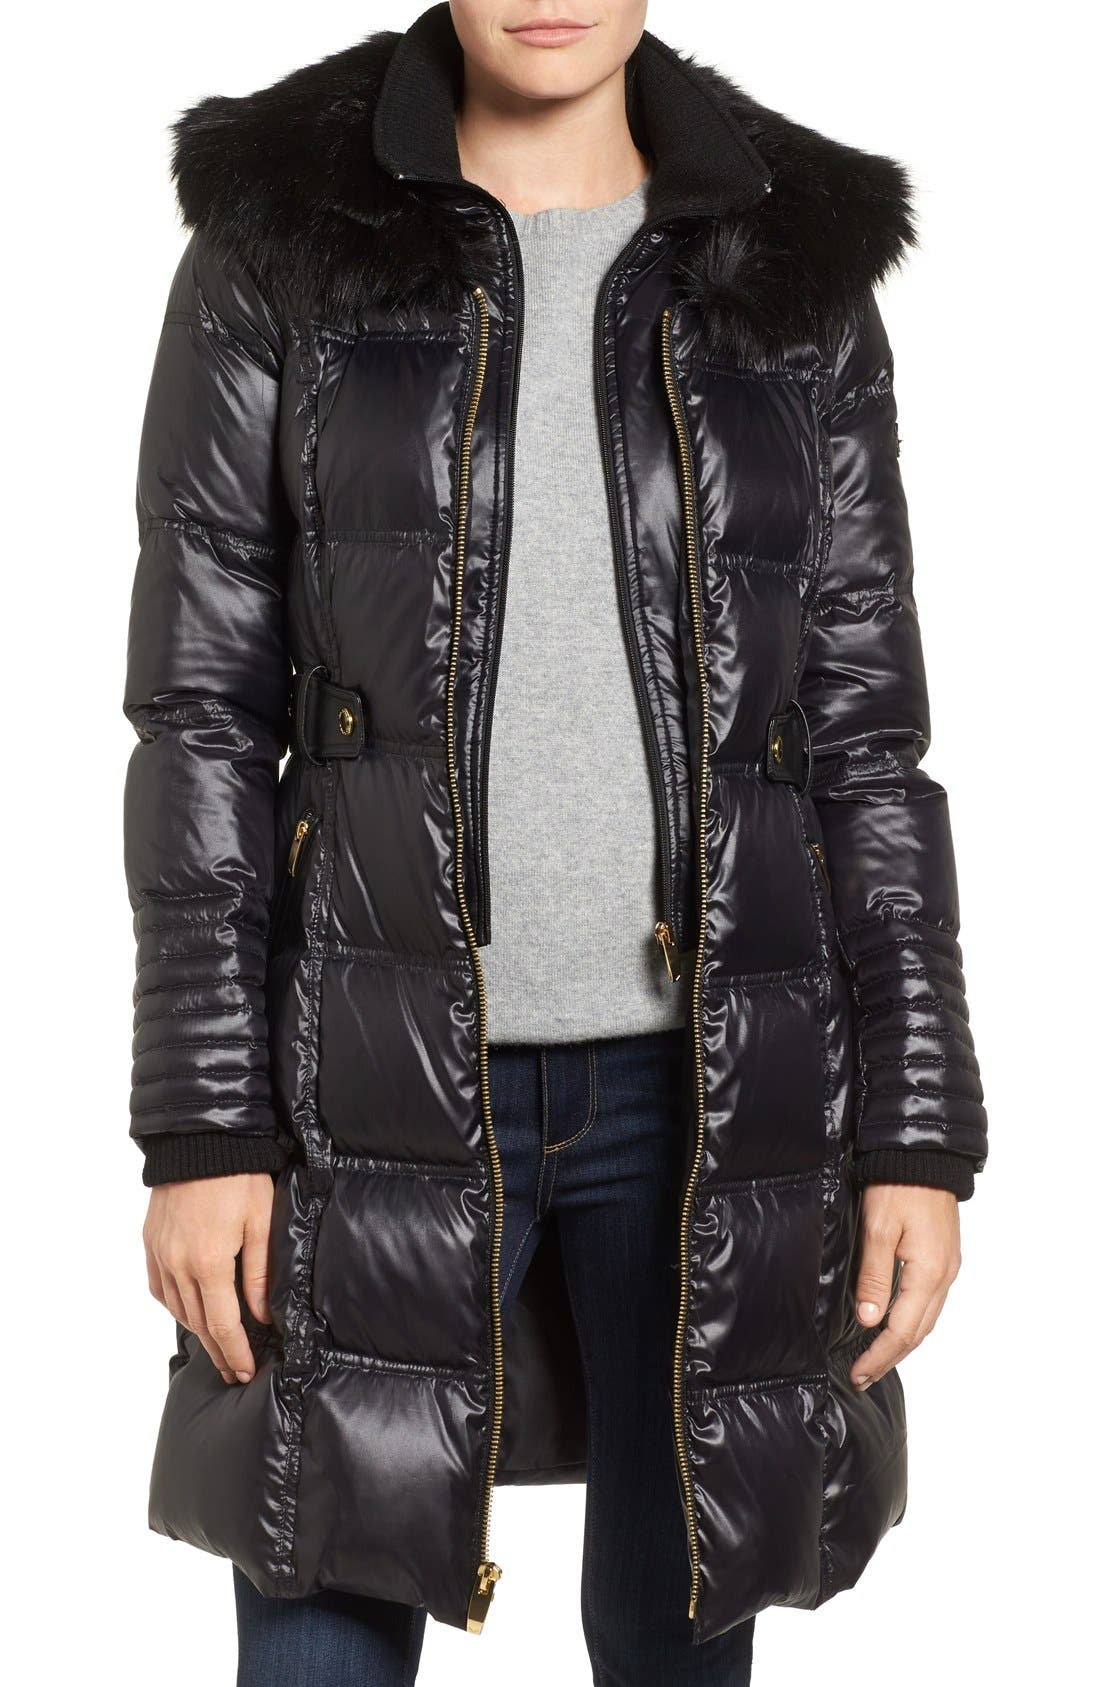 Alternate Image 1 Selected - Via Spiga Quilted Coat with Faux Fur Trim